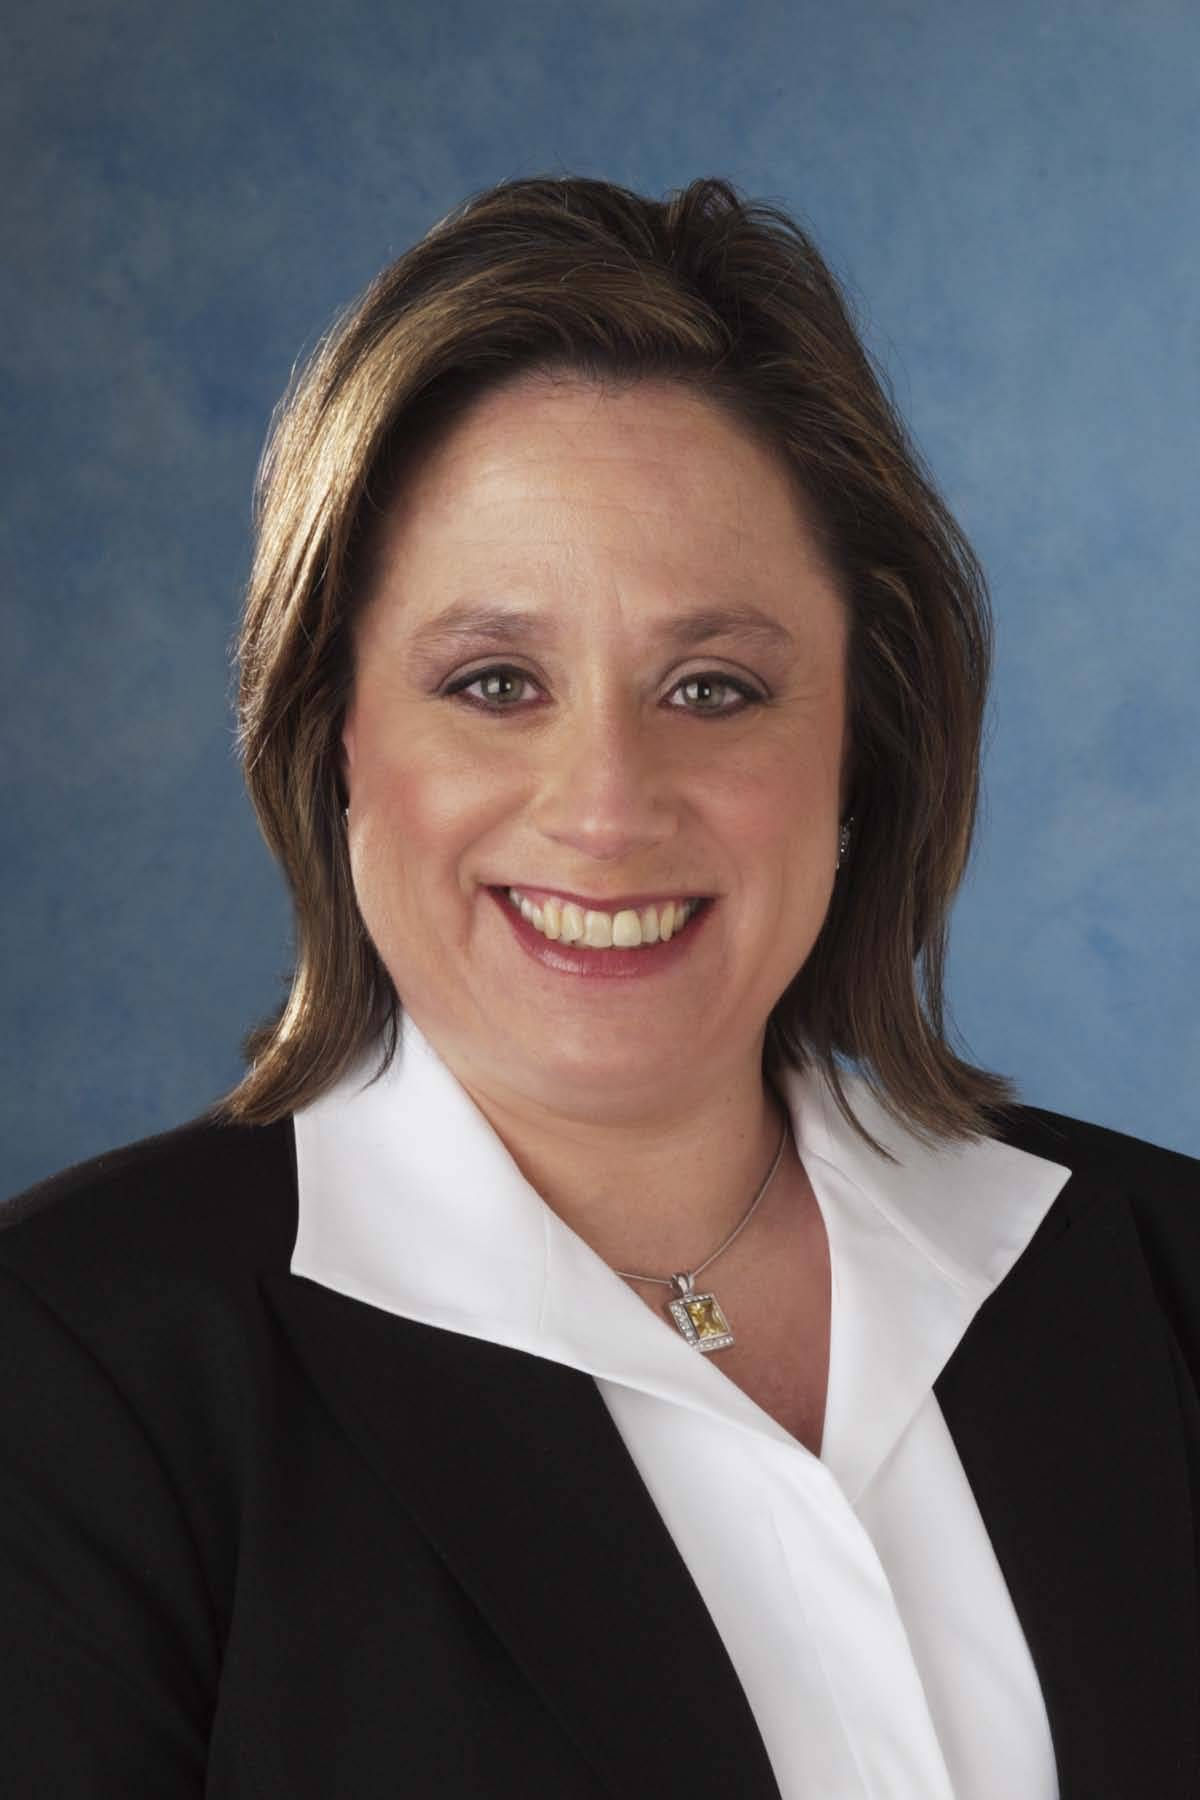 Deidre Baumann, running for Cook County Circuit Court (Stewart vacancy)